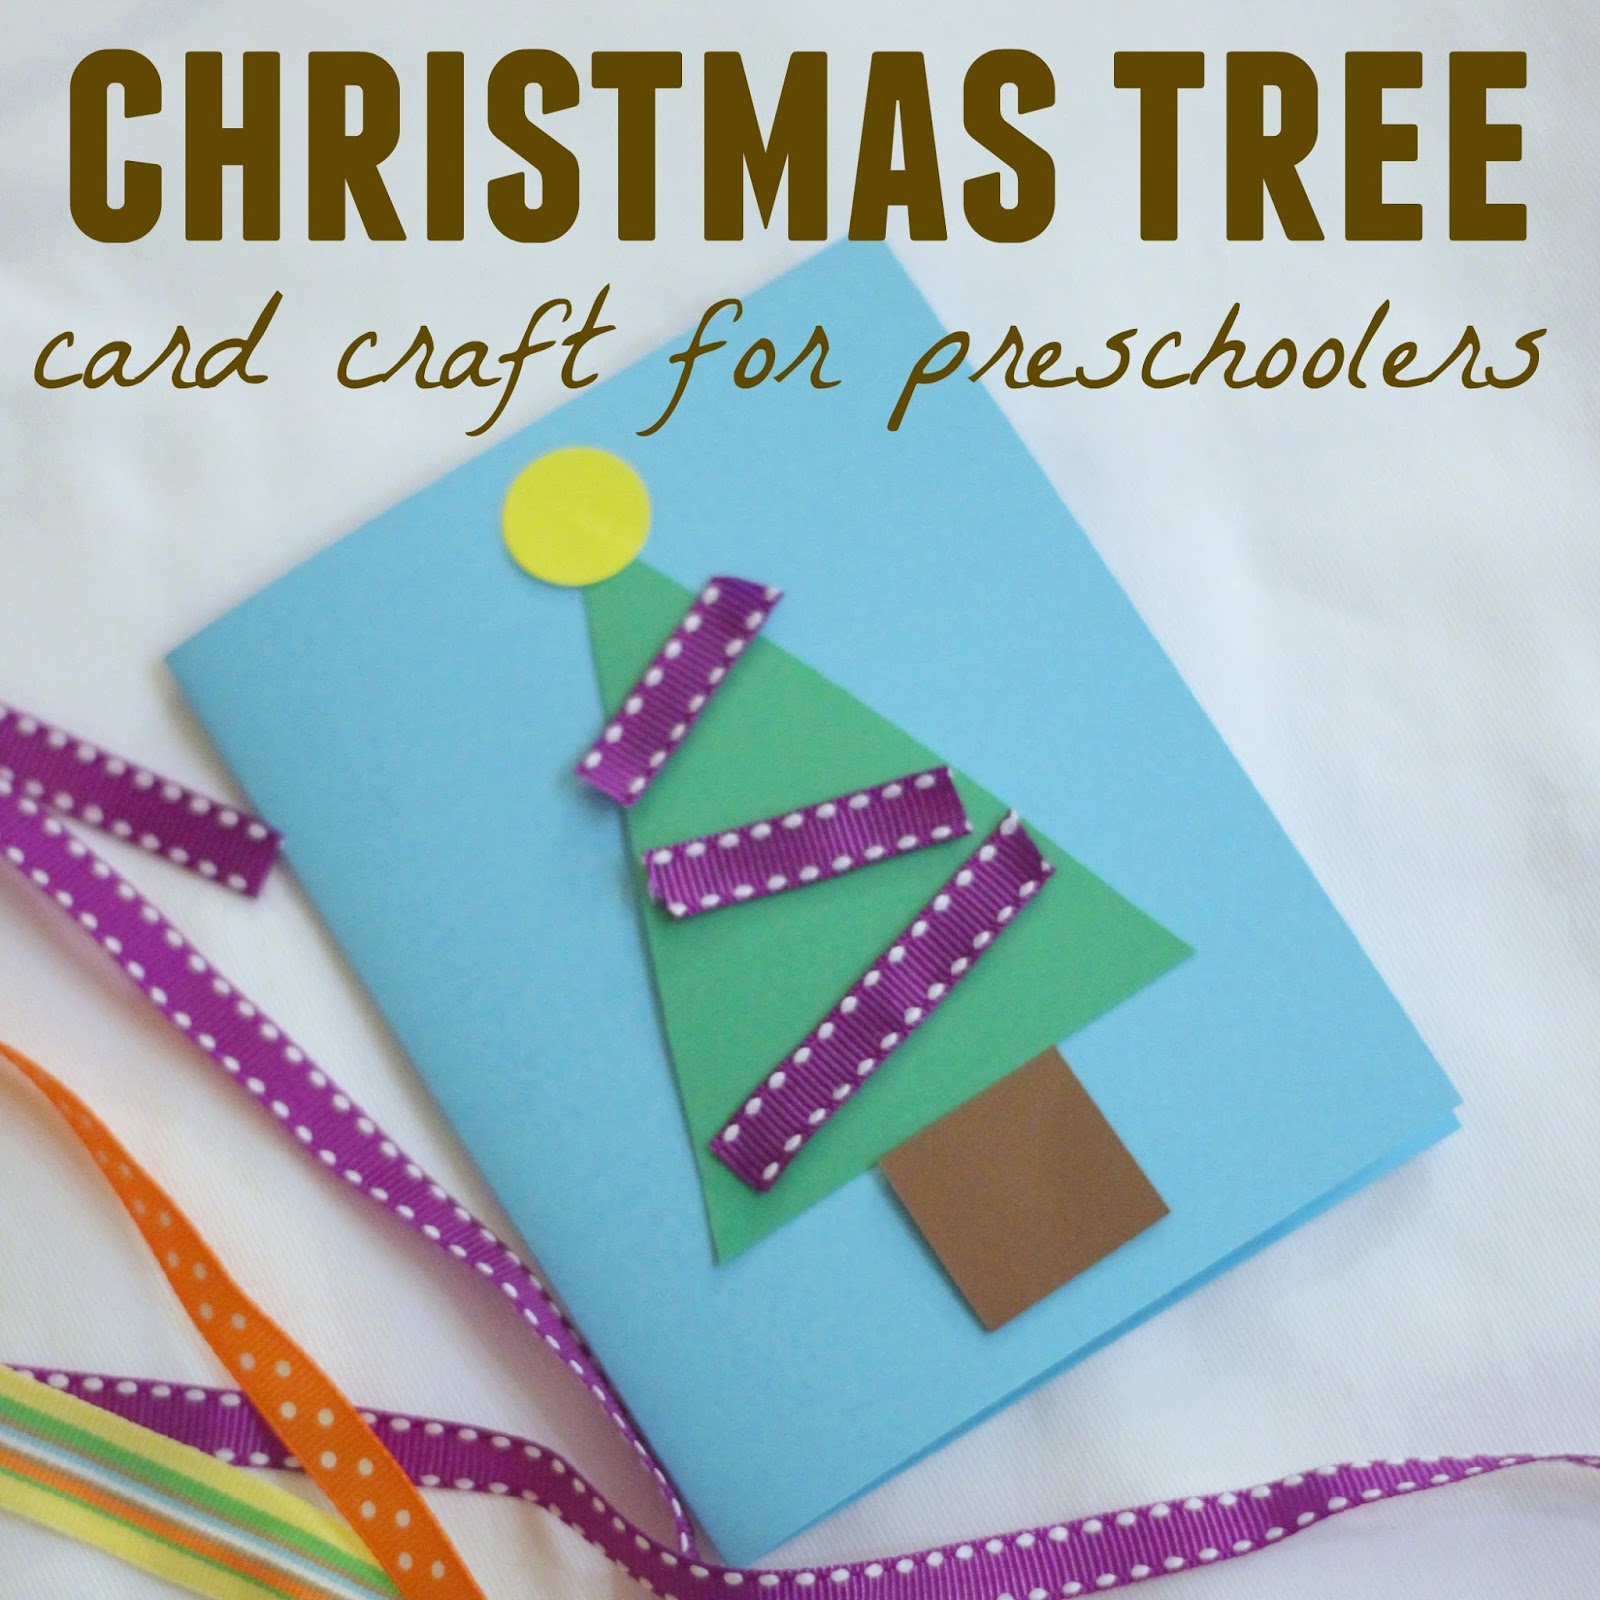 Toddler Approved!: Christmas Tree Card Craft for Preschoolers